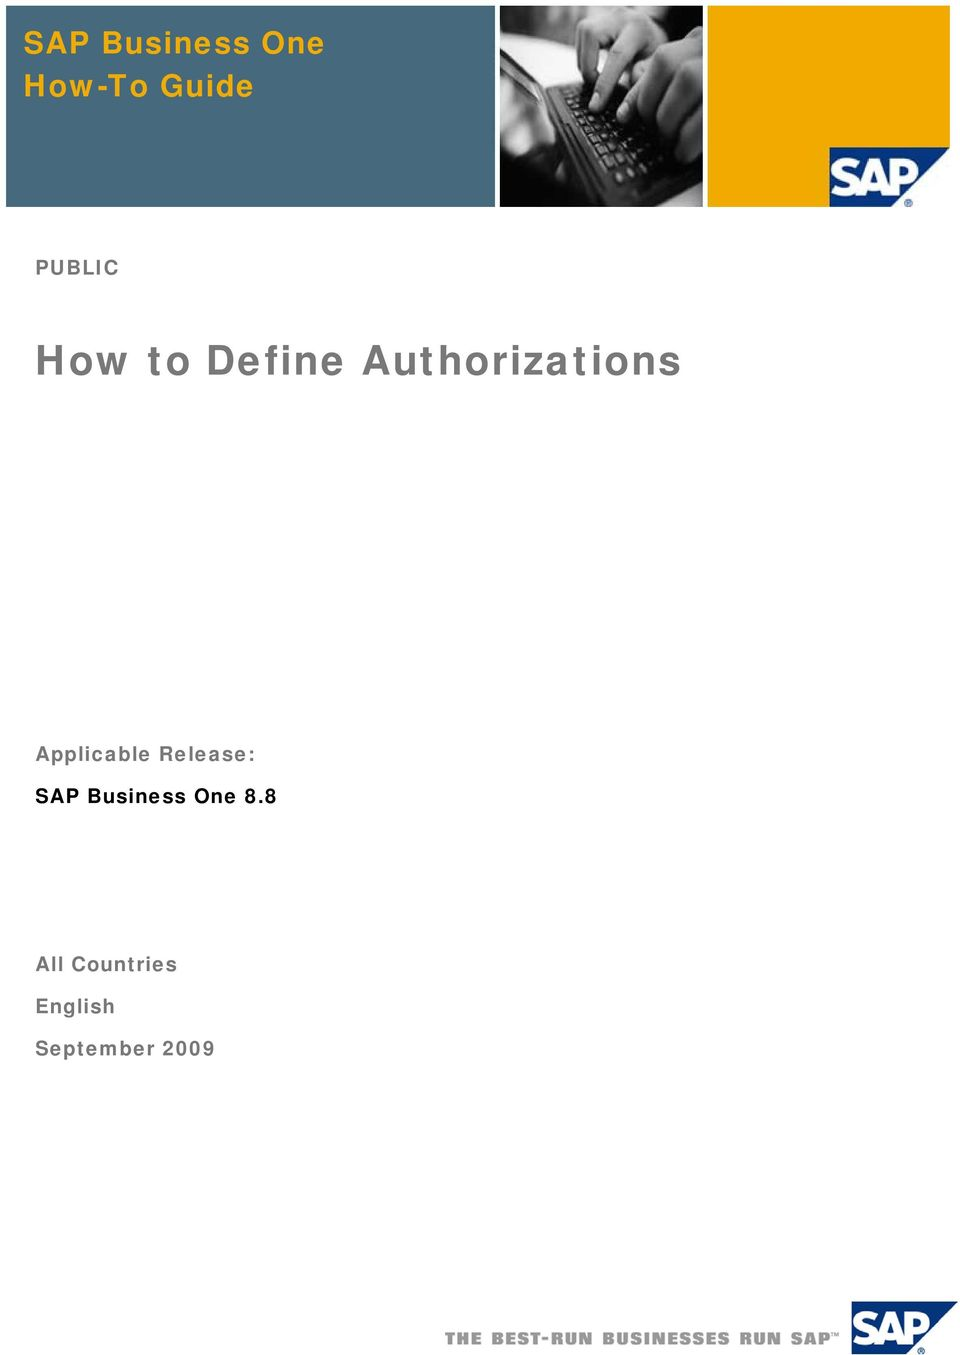 Applicable Release: SAP Business